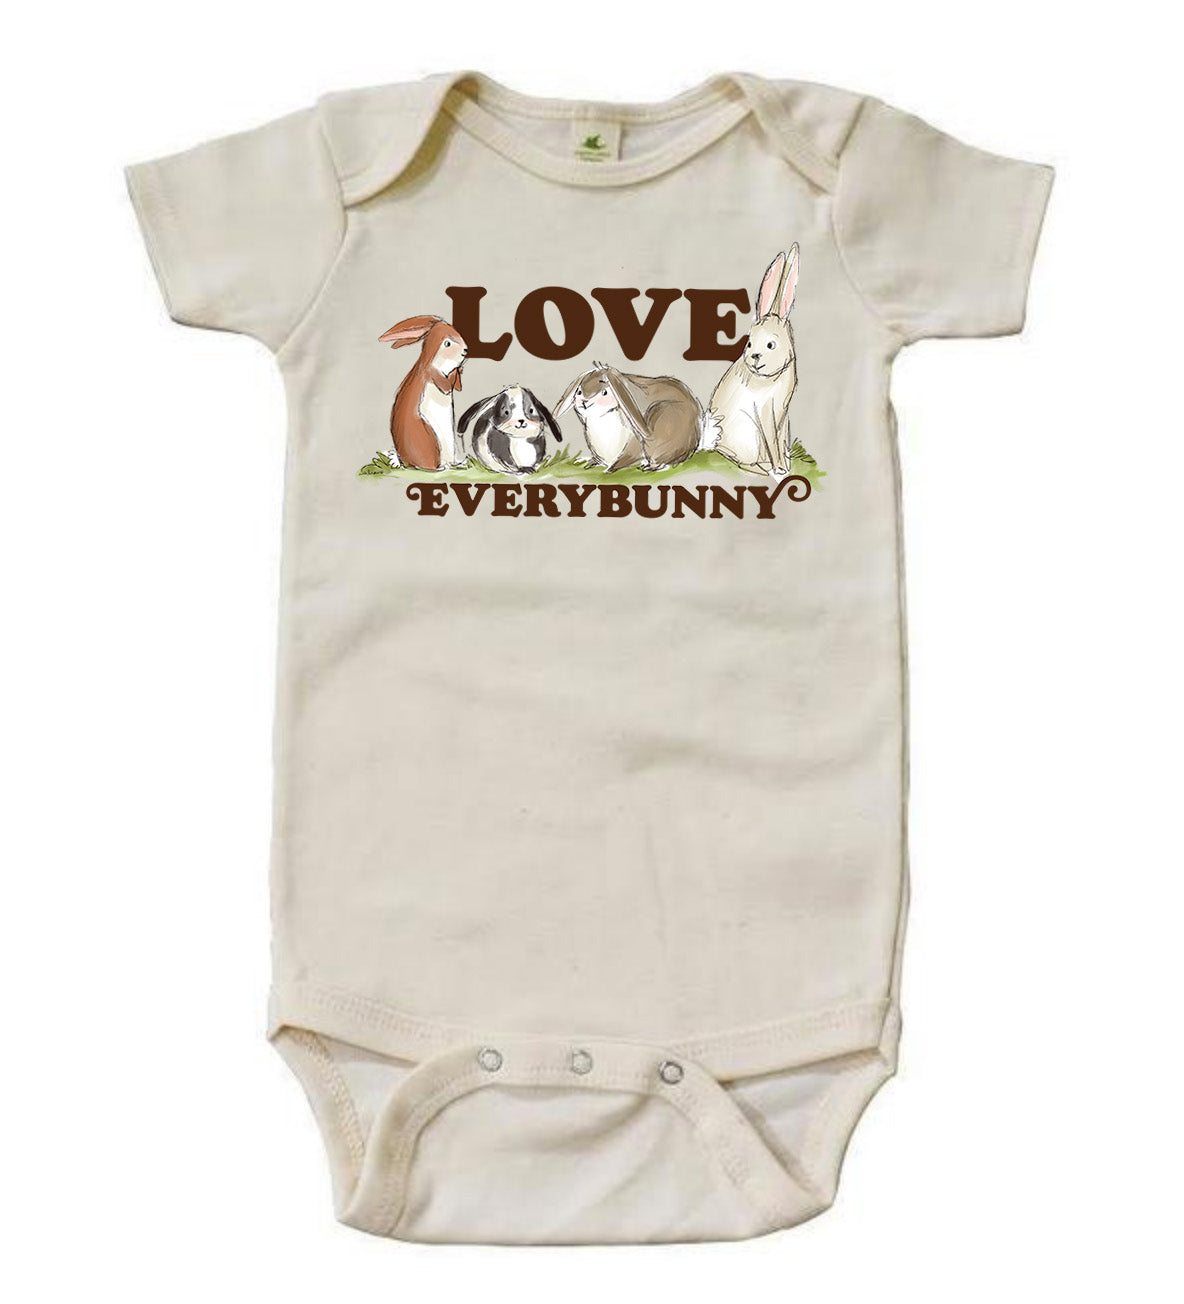 Love Everybunny [Bodysuit] Ready To Ship!